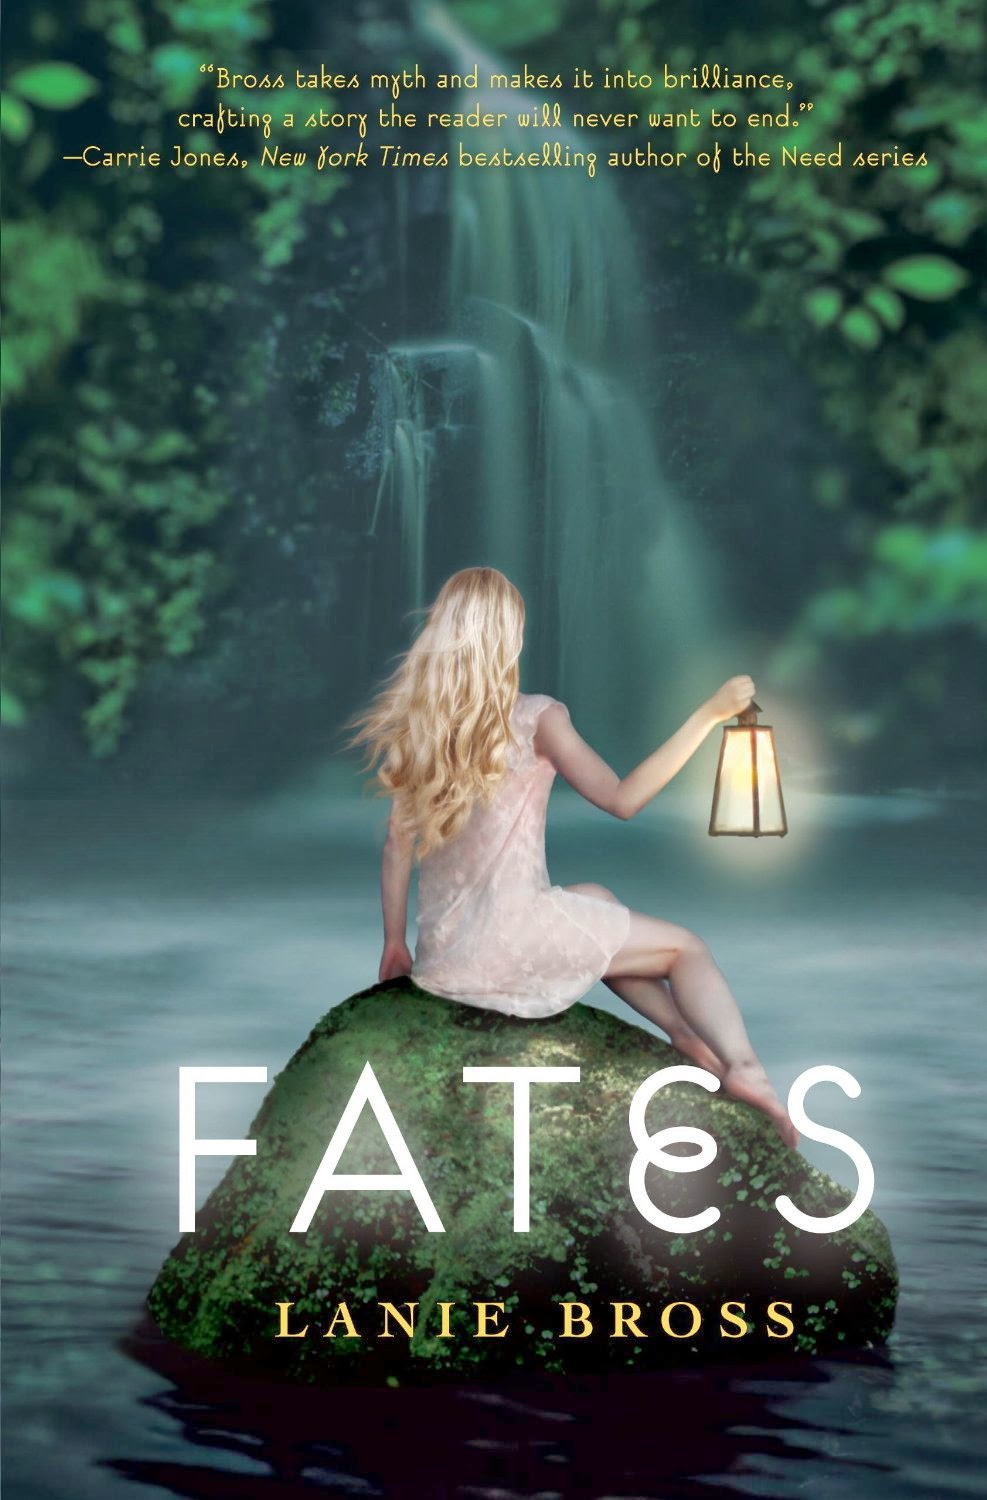 fates, book cover, lanie bross